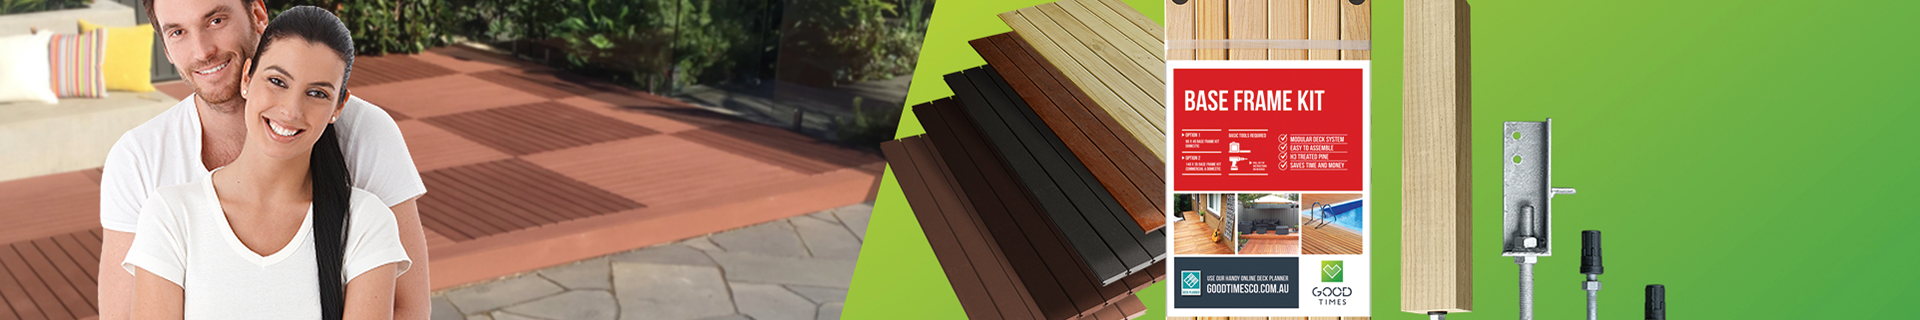 A couple and decking products on the Good Times Decking product banner.